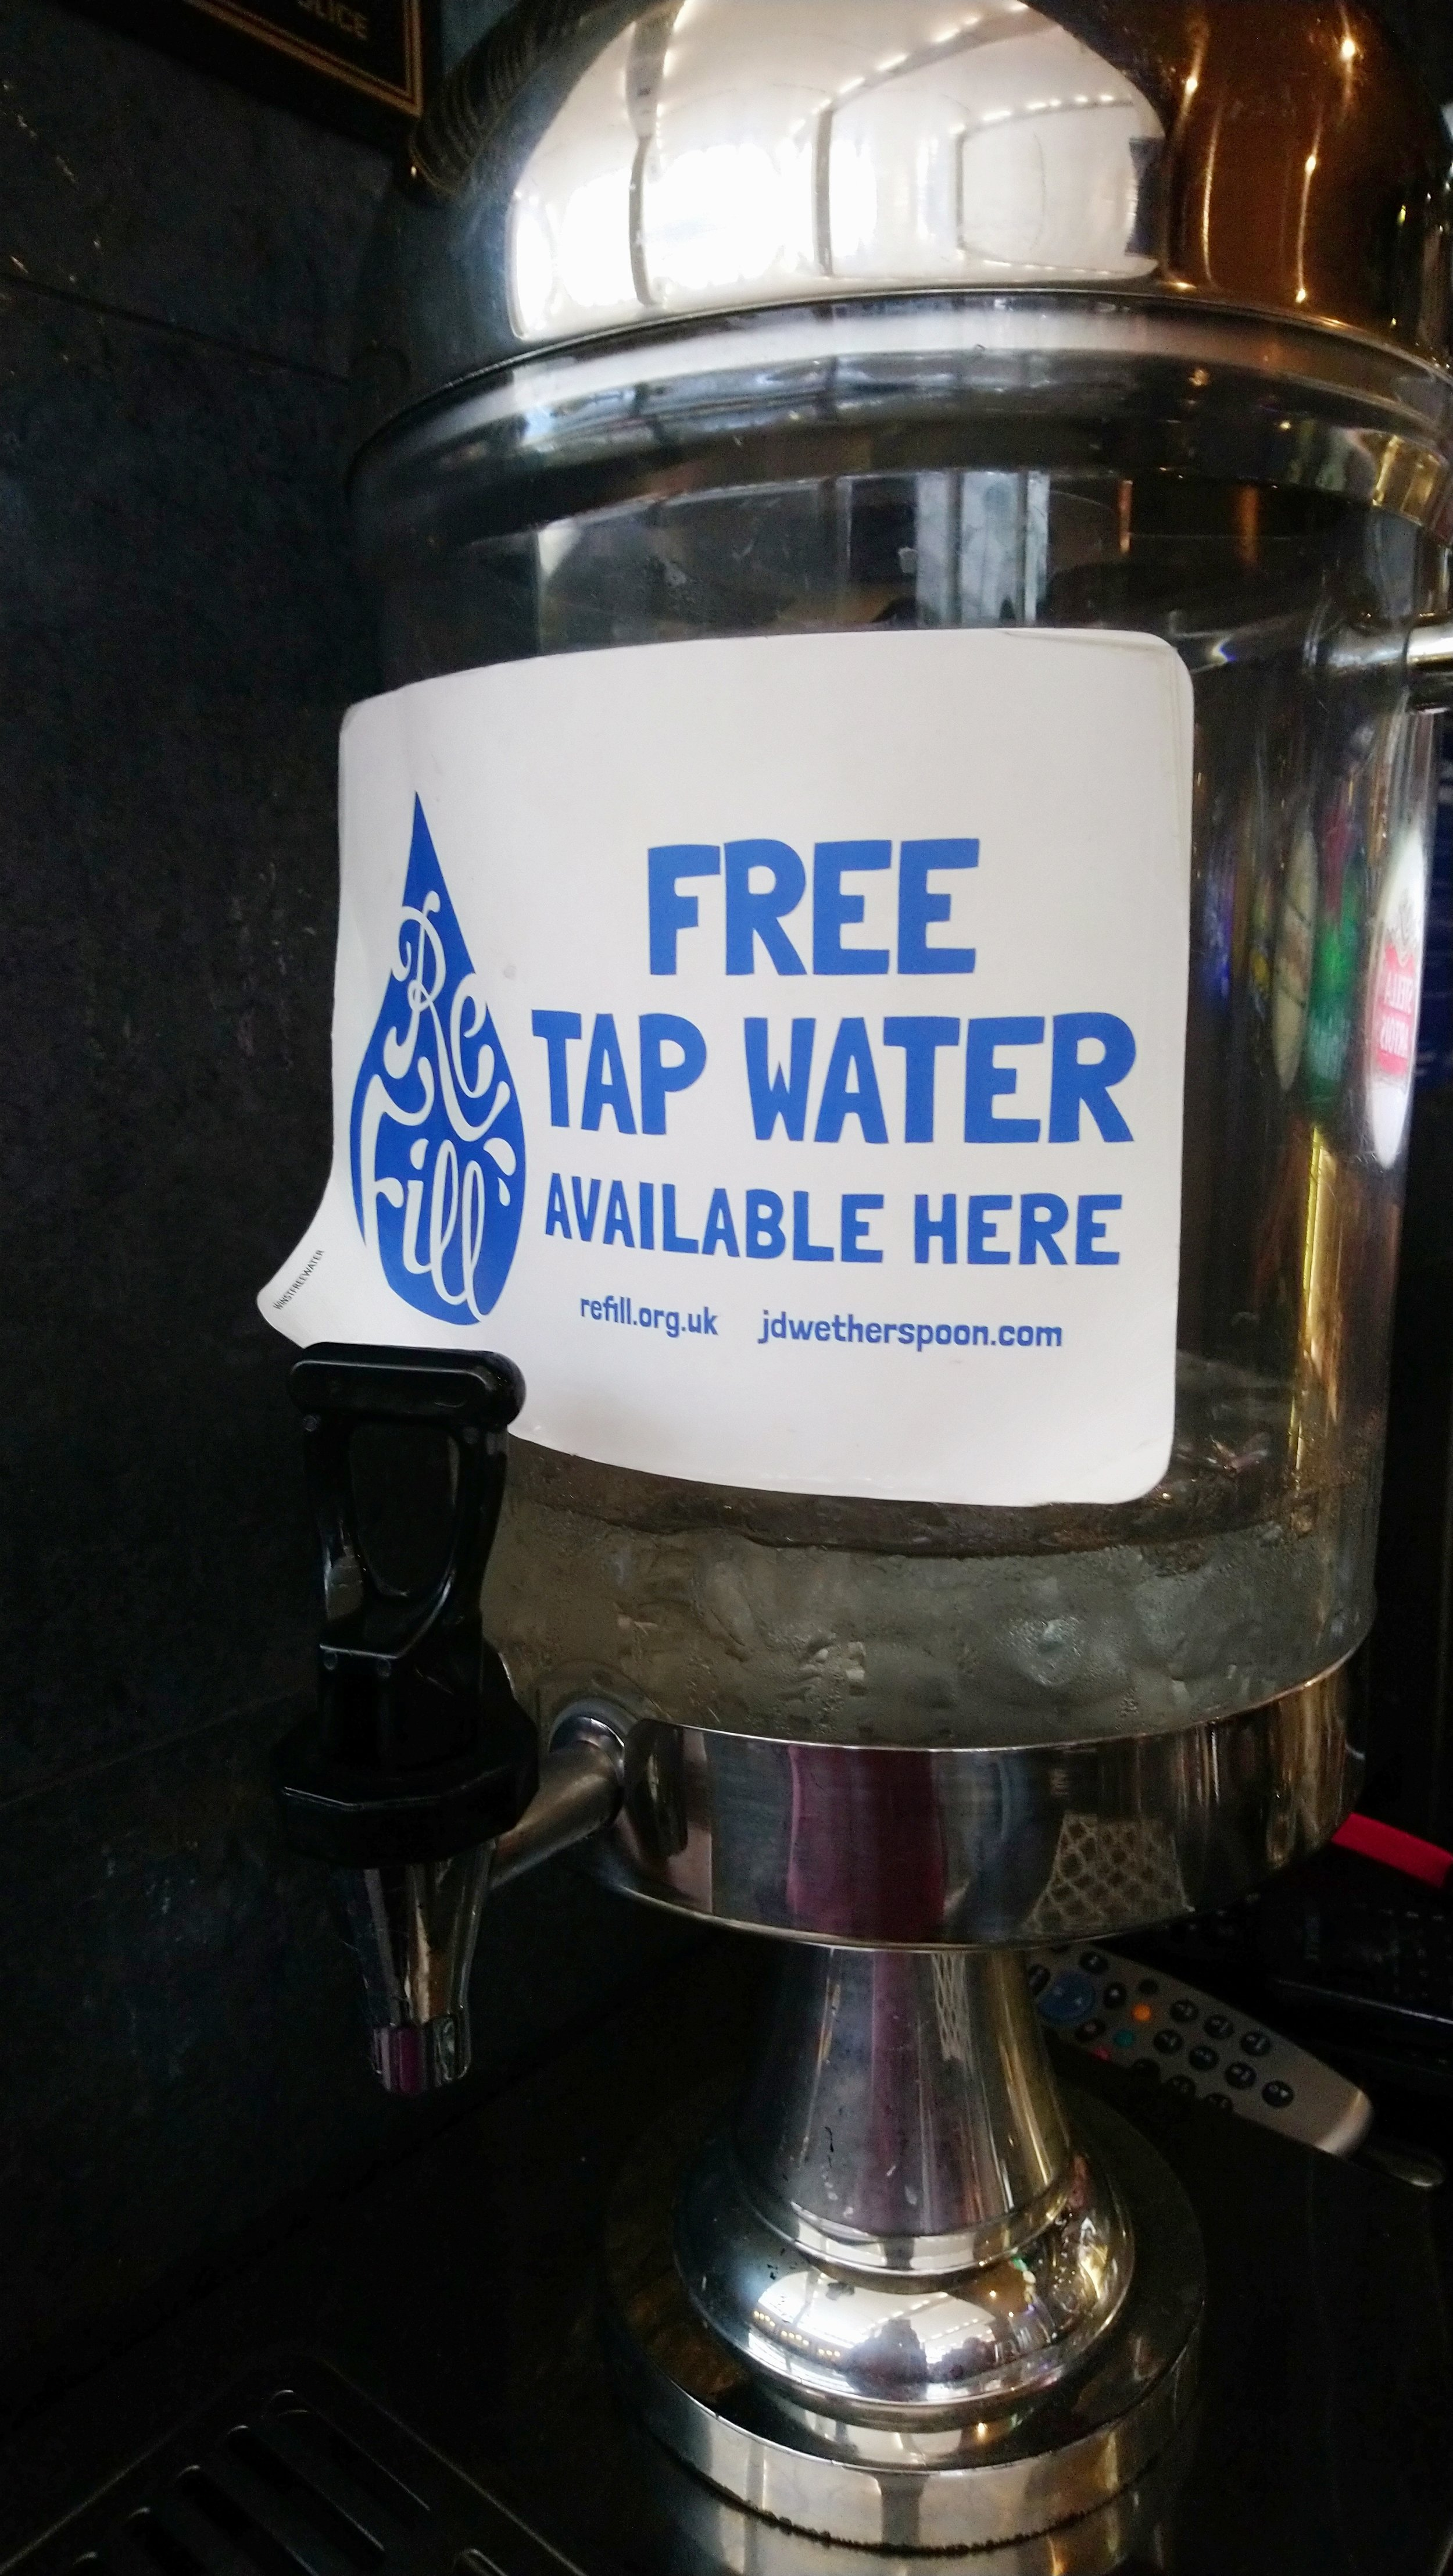 Free tap water can be found via the ReFIll app in many places throughout England and Scotland